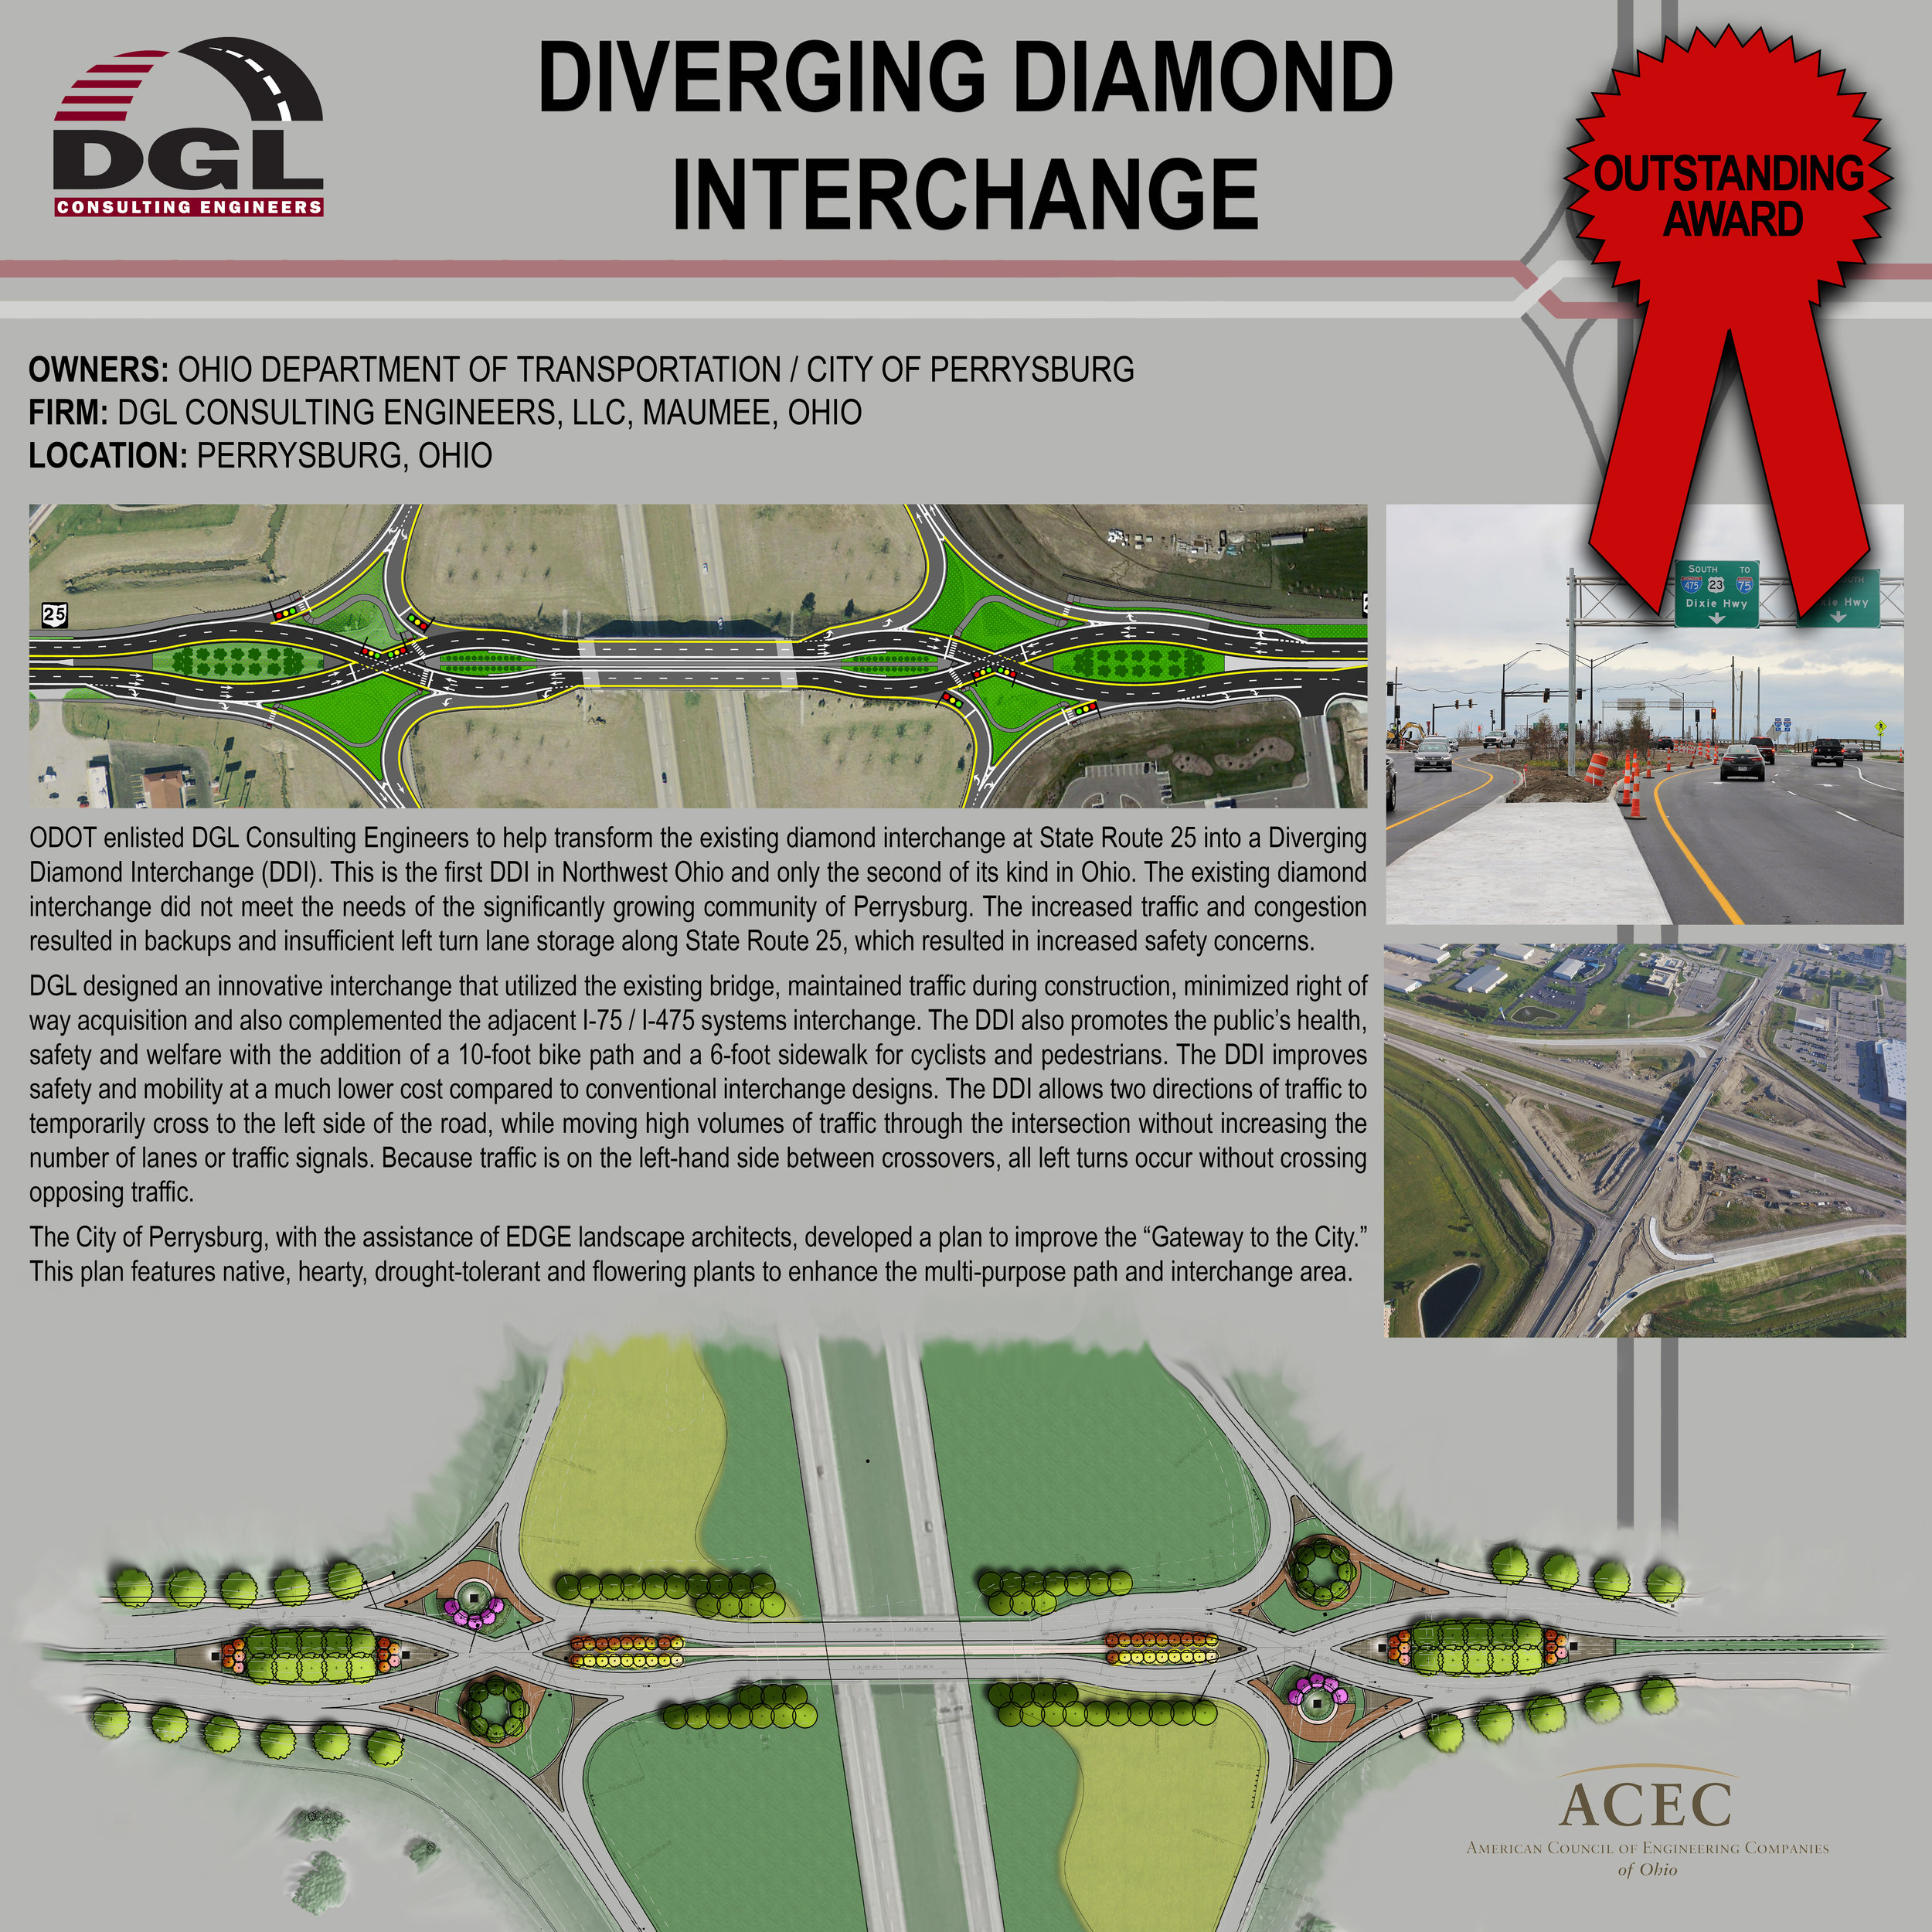 acec ENGINEERING excellence outstanding award: diverging diamond interchange